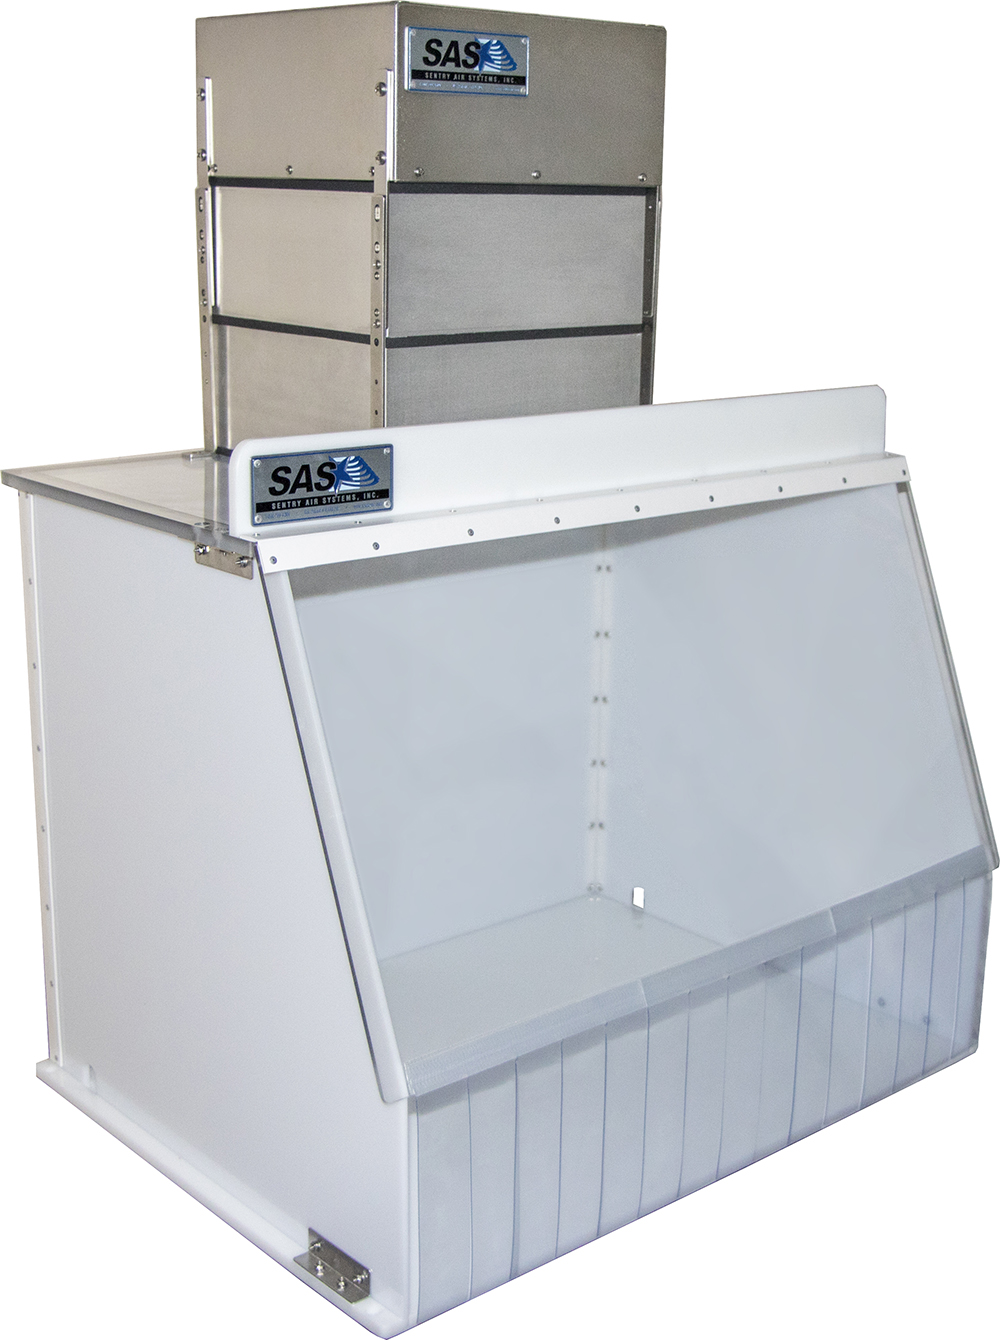 High Efficiency Compounding Hood